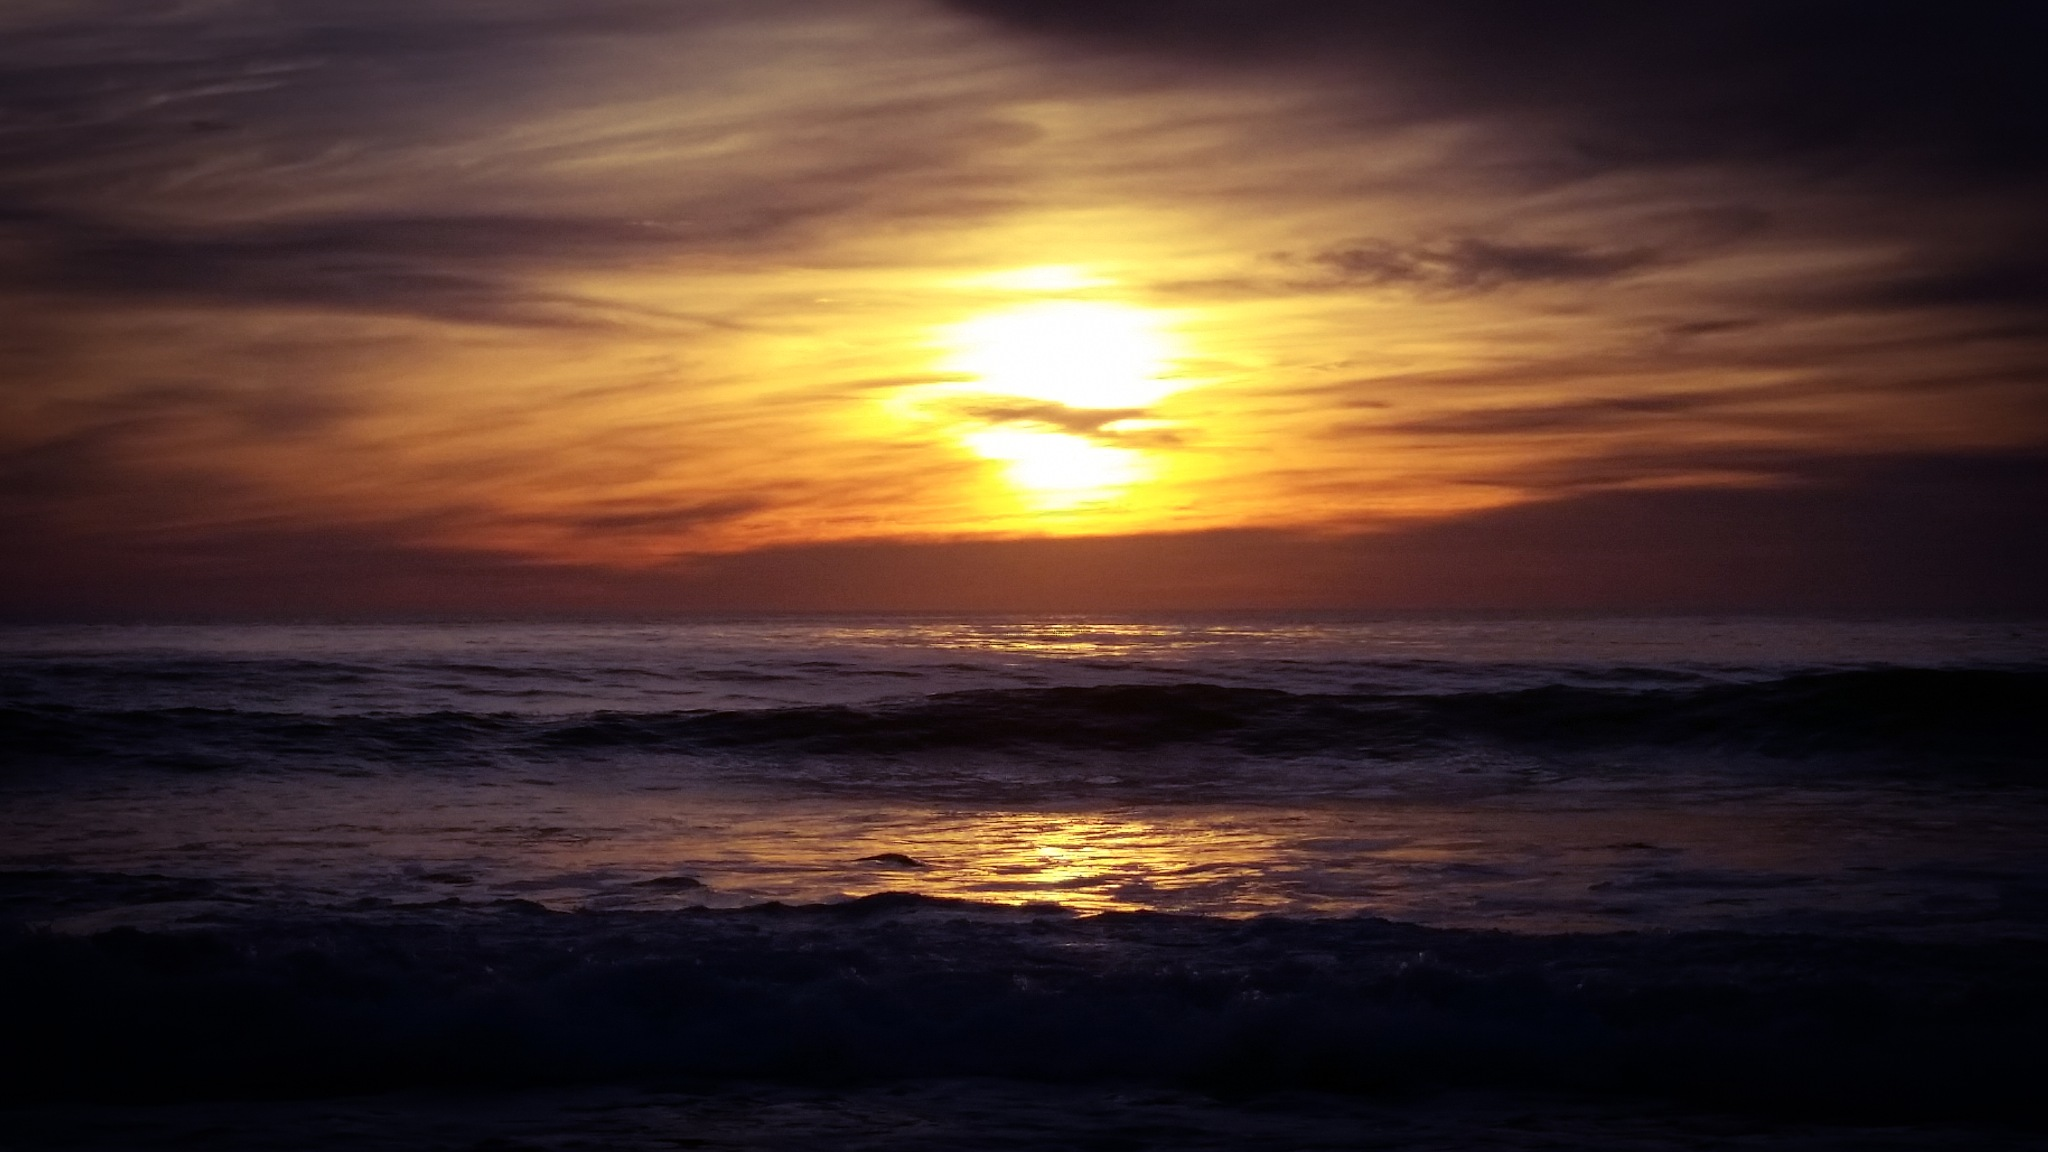 Sunset over the Pacific Ocean  by Ted Fletcher